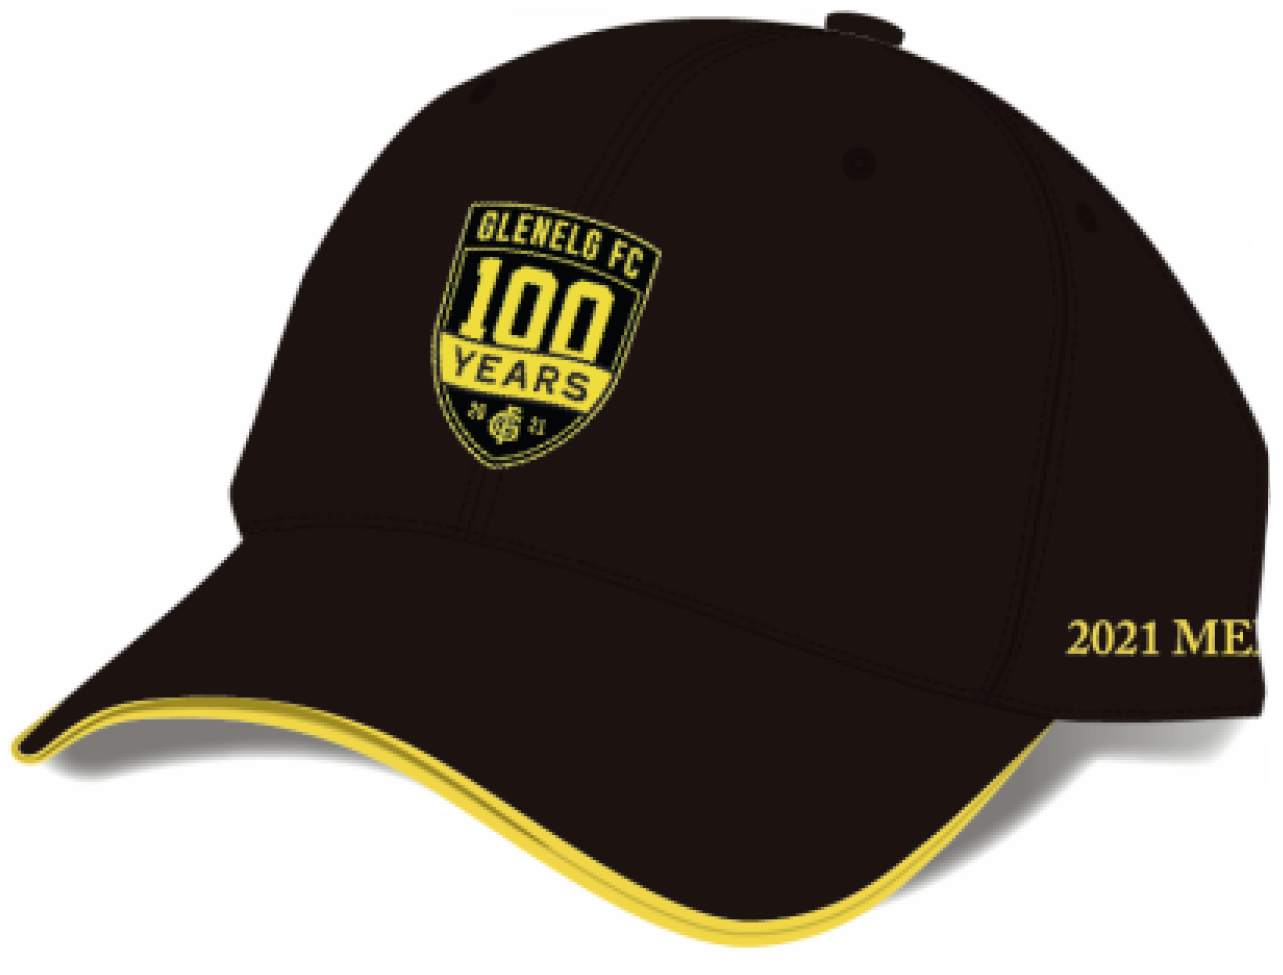 2021 Members Only 100 Year Cap